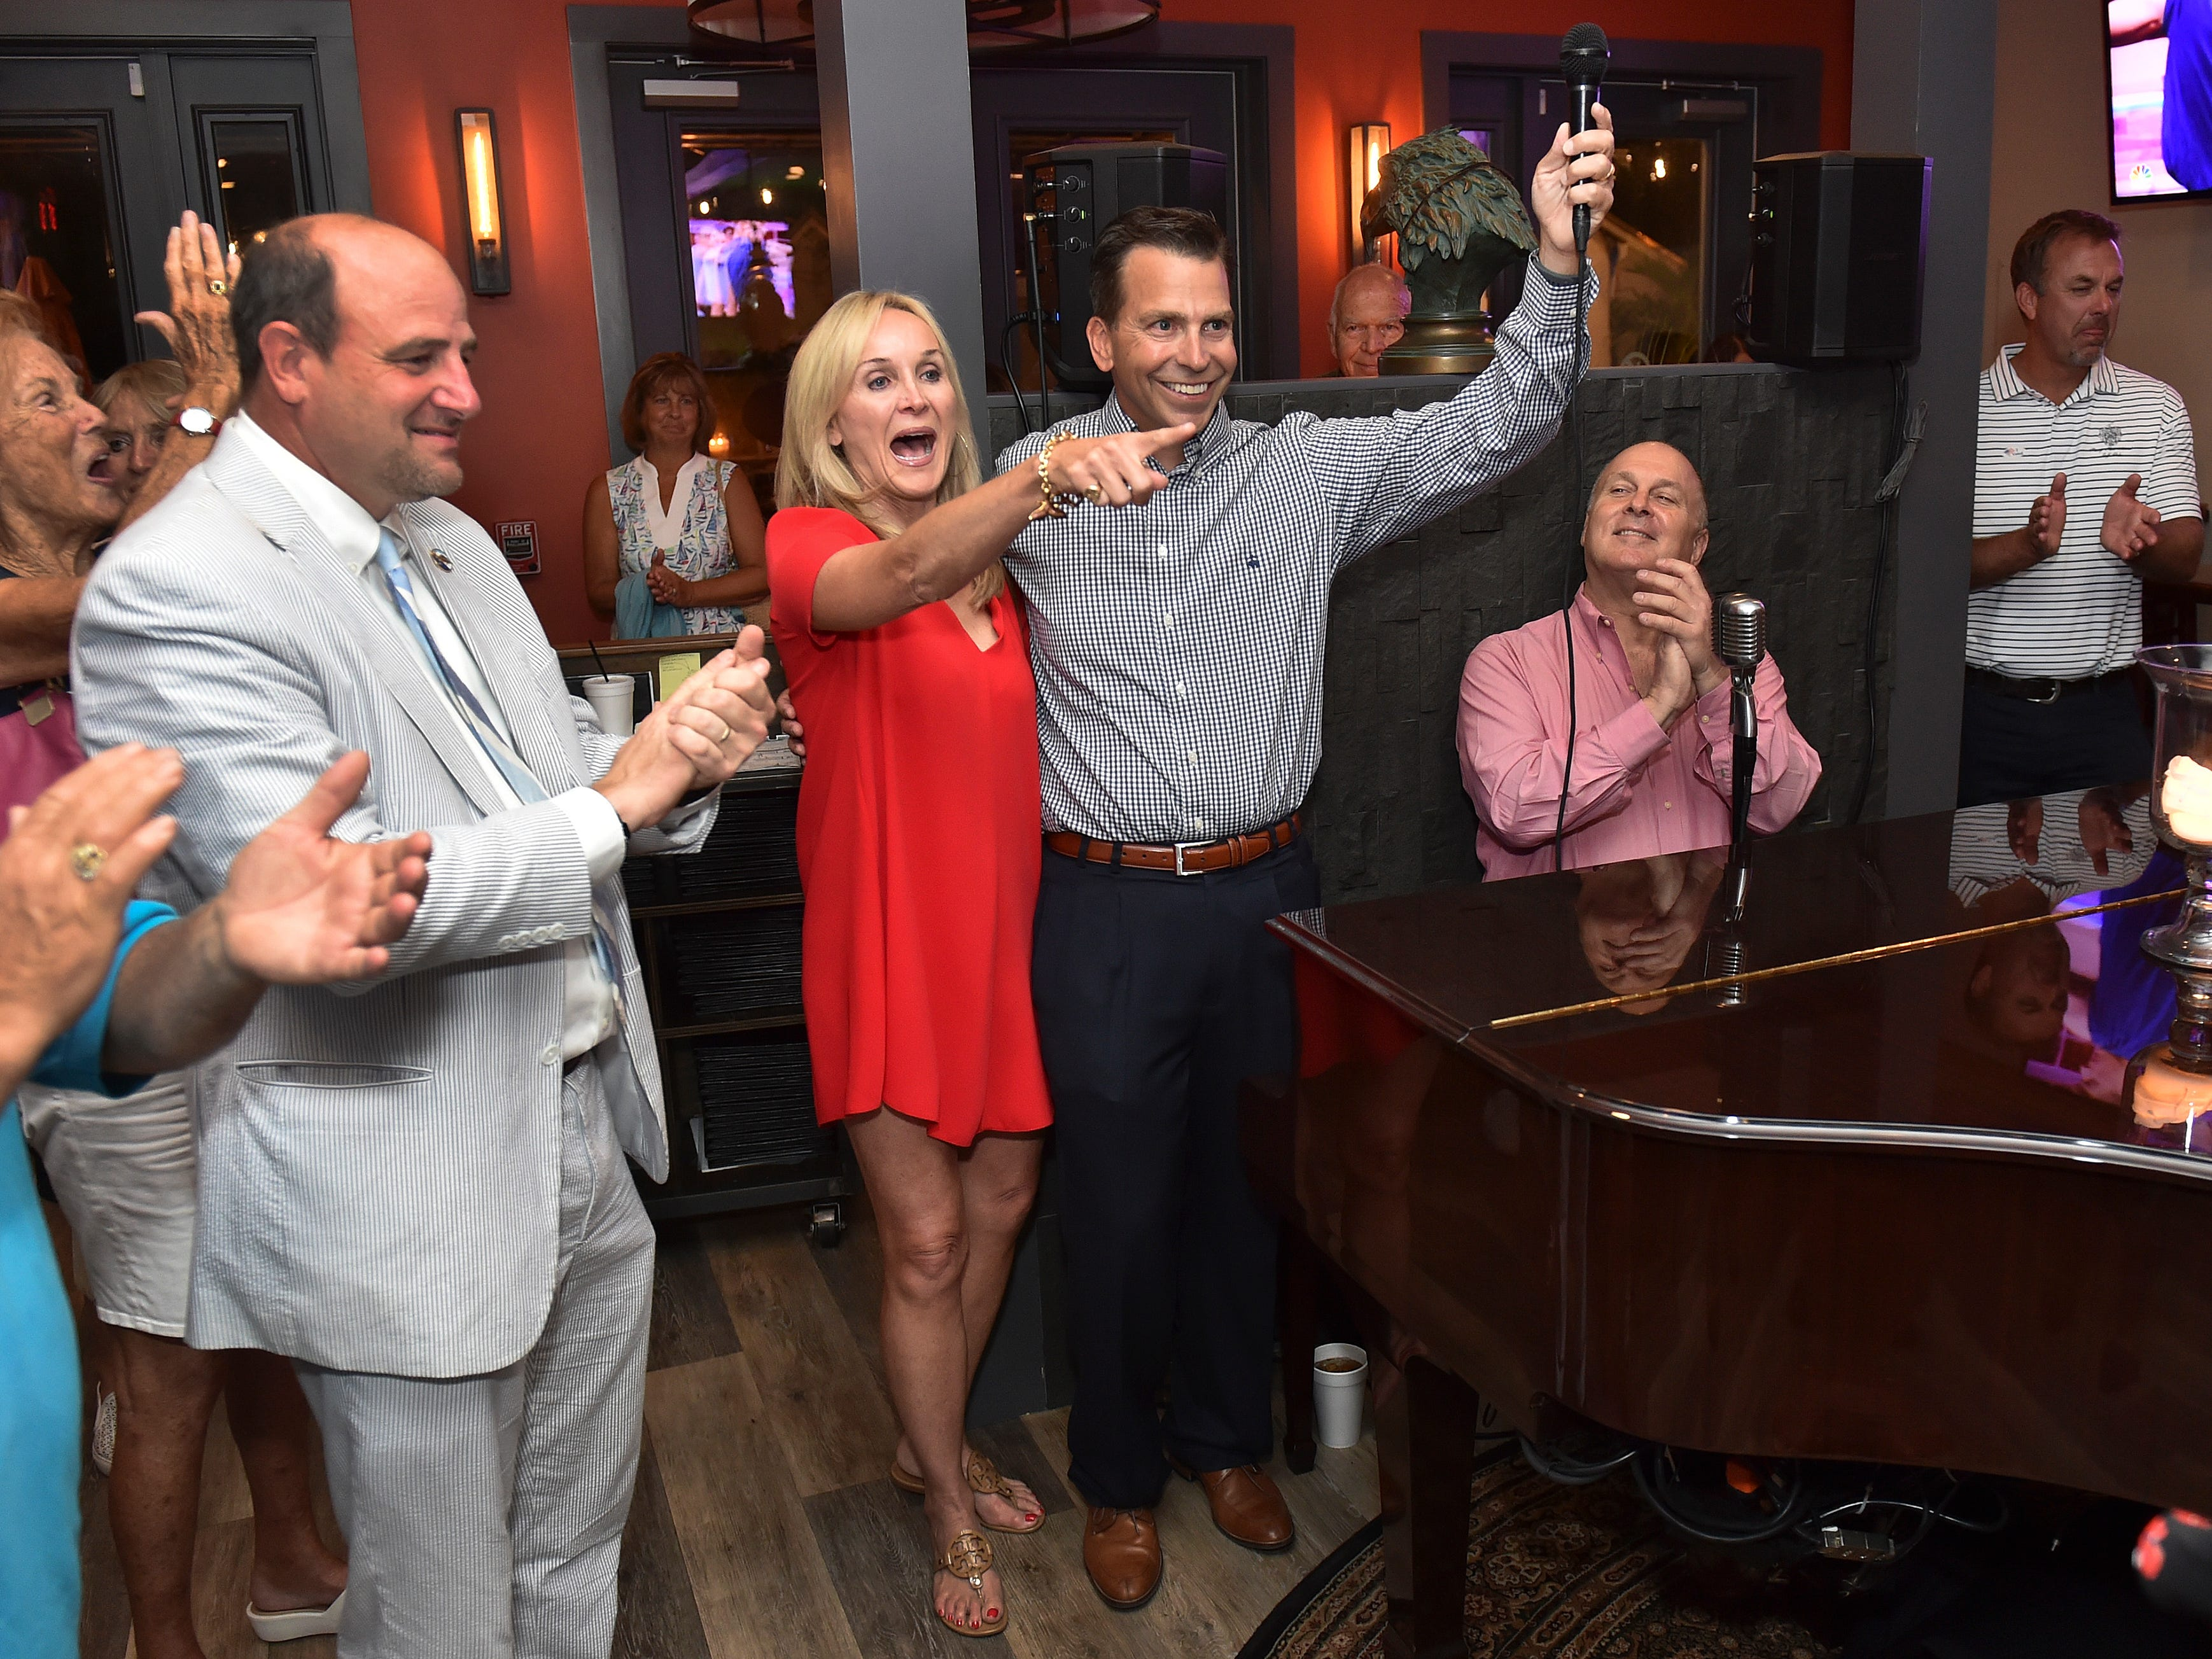 Toby Overdorf (center right) and his wife Maggie celebrates his win over Sasha Dadan in the Florida House District 83 Republican primary at the Talk House in Stuart on Tuesday, Aug. 28, 2018. Overdorf will face Democrat Matt Theobald, a Jensen Beach teacher, in the Nov. 6 general election for the two-year seat that represents parts of Martin and St. Lucie counties, currently held by Republican Rep. Gayle Harrell.